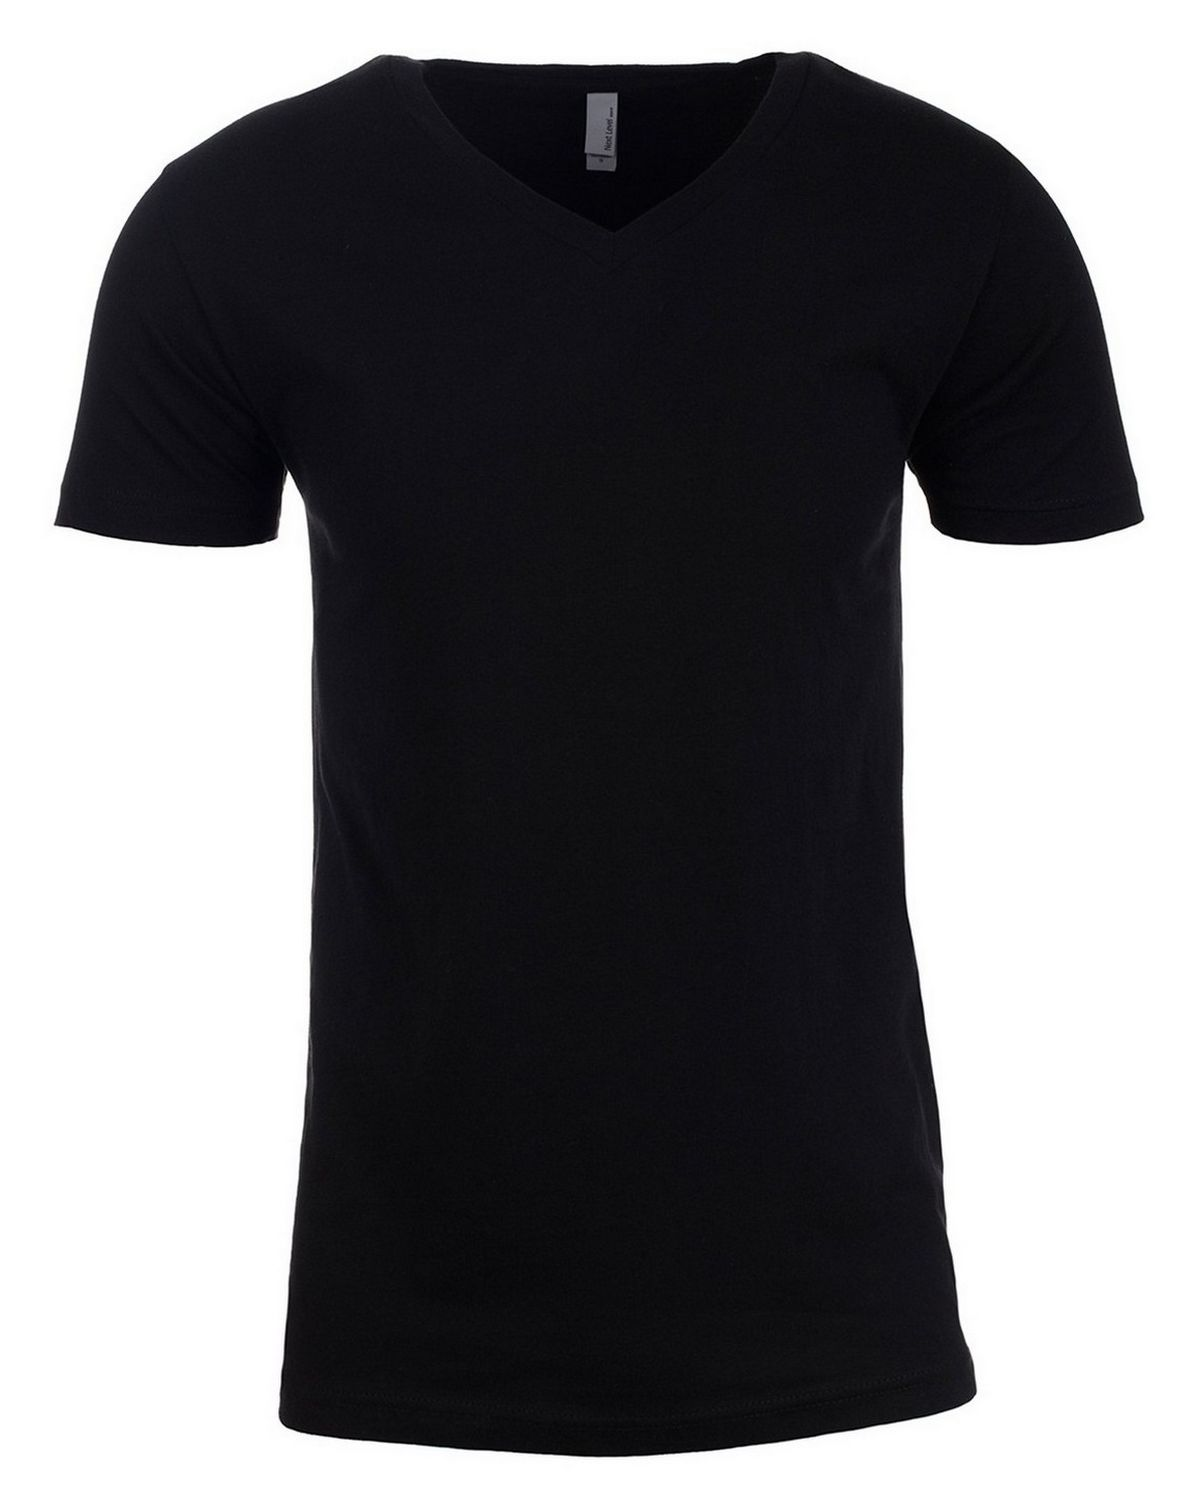 Next Level NL3200 Short Sleeve V-Neck Tee - Black - 2X NL3200